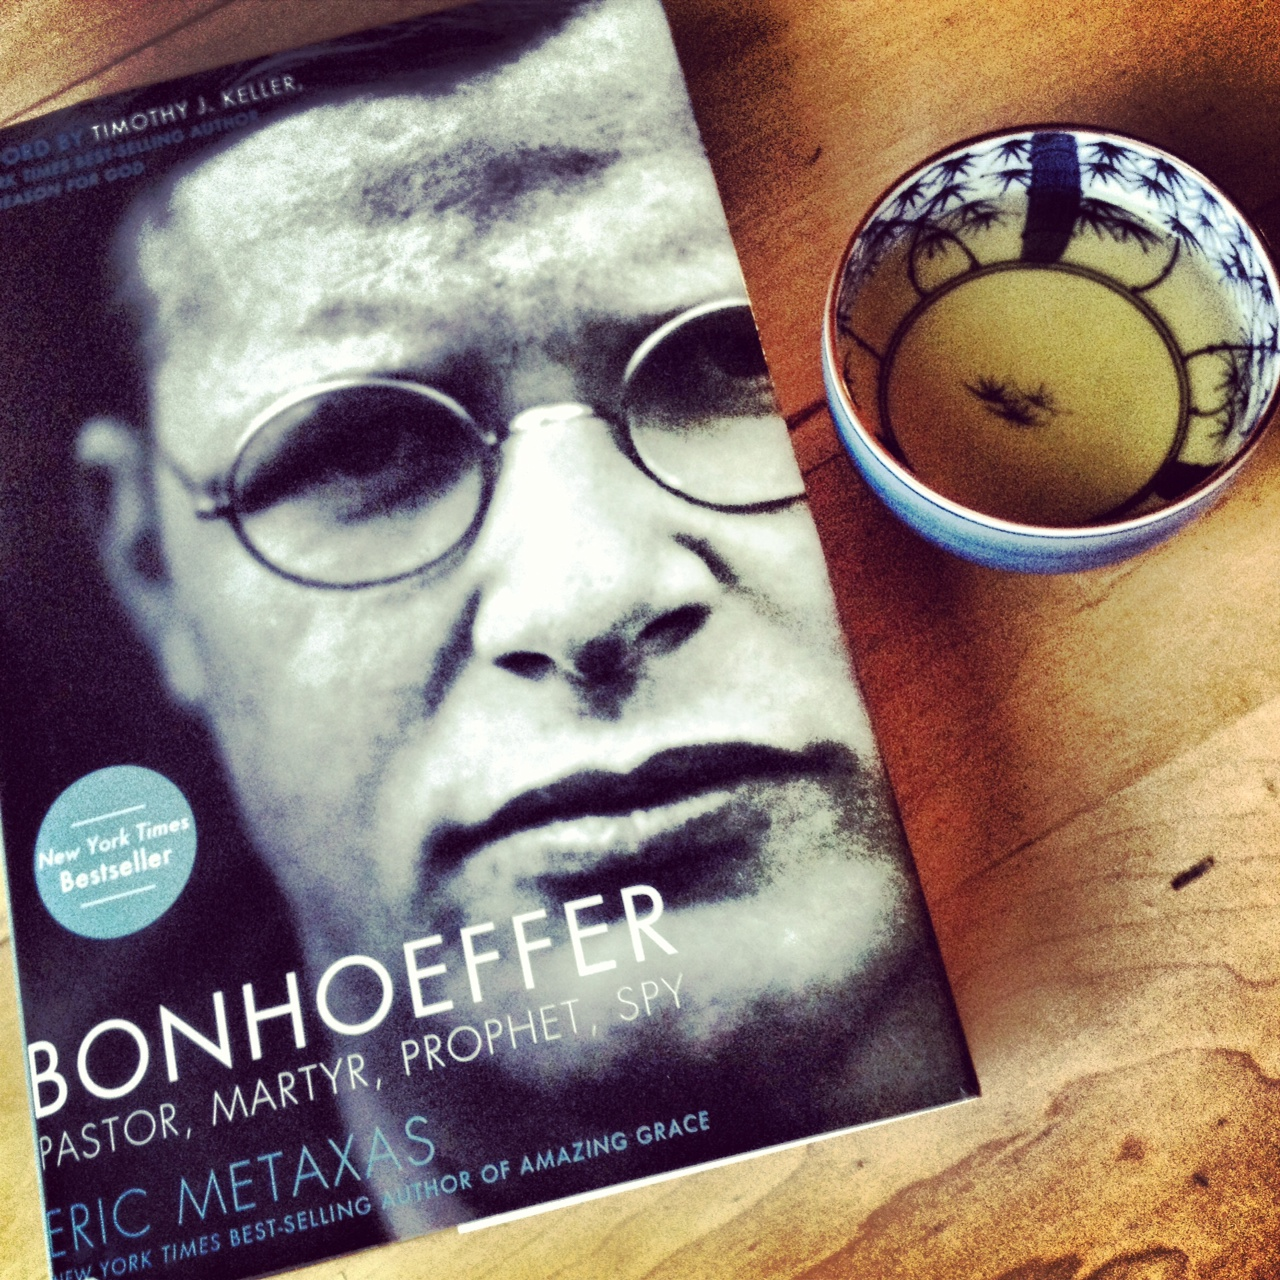 bonhoeffer biography, bonhoeffer, eric metaxas, books, book and tea, lovely combo